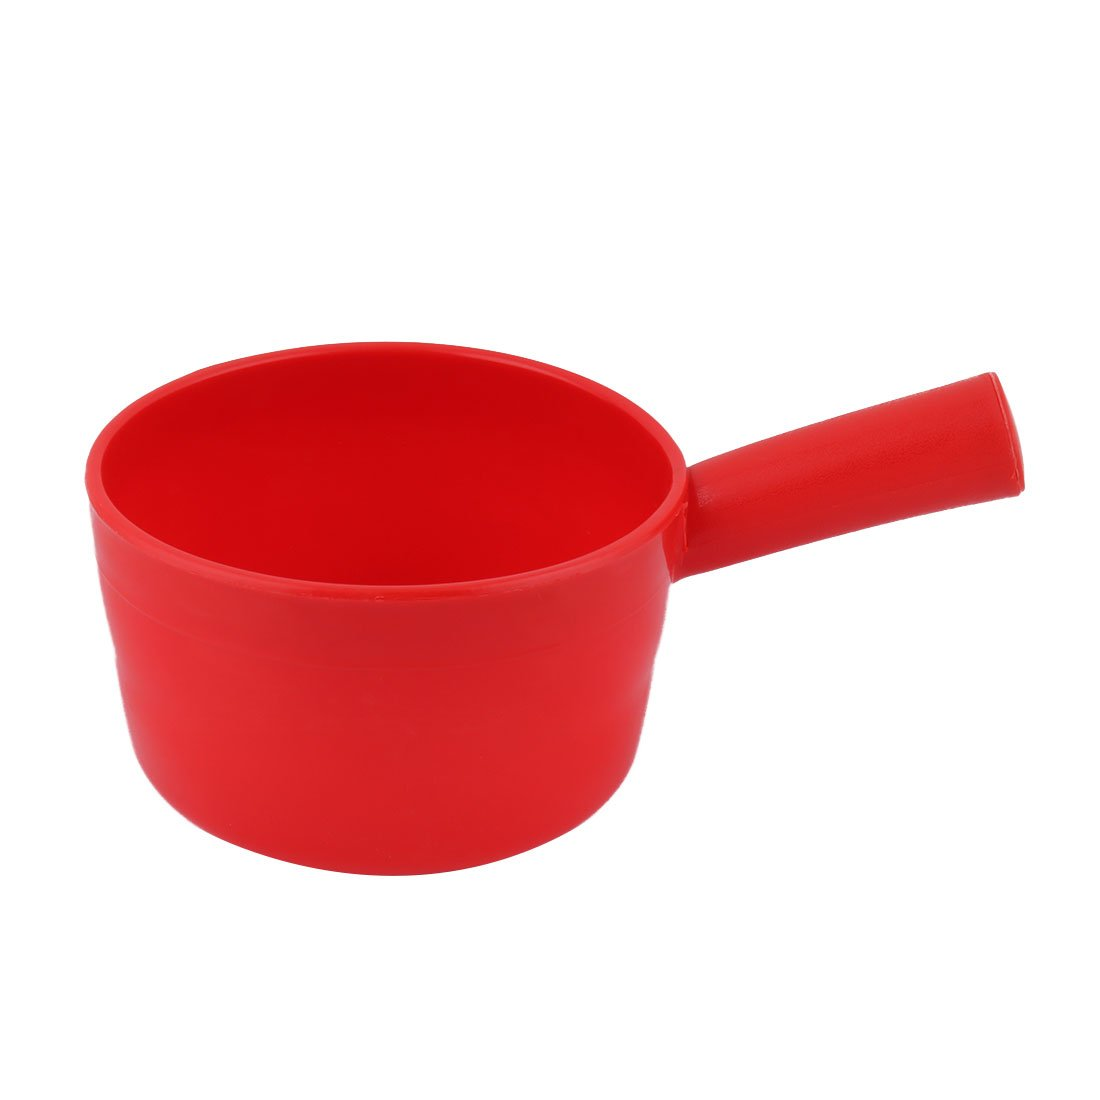 uxcell Plastic Round Shape Home Kitchen Nonslip Grip Water Dipper Ladle Bailer Red a17050900ux1190